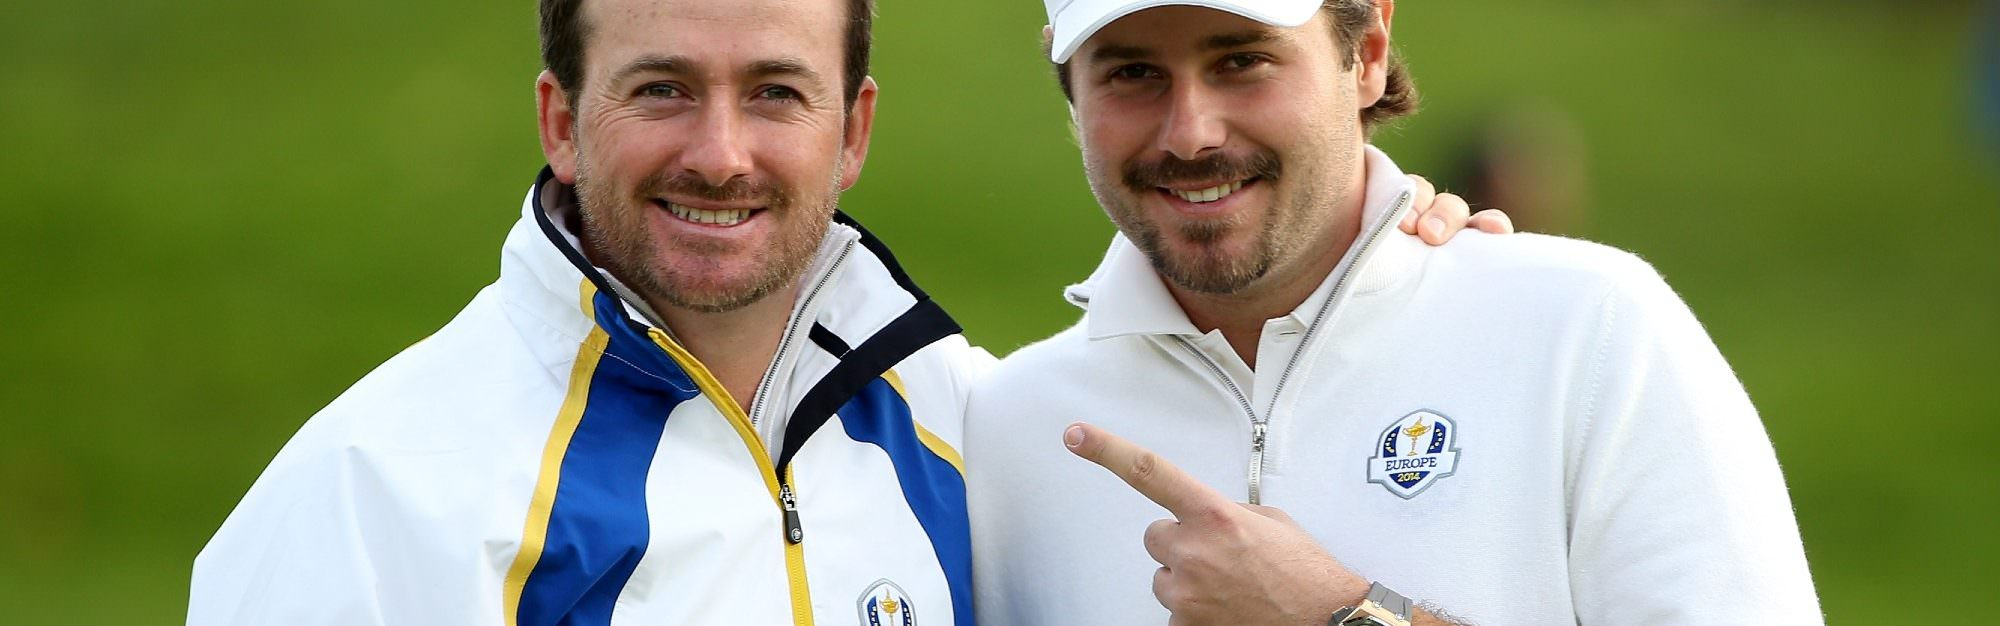 McDowell: US Open drama, Ryder Cup controversies, and my love for Dubuisson